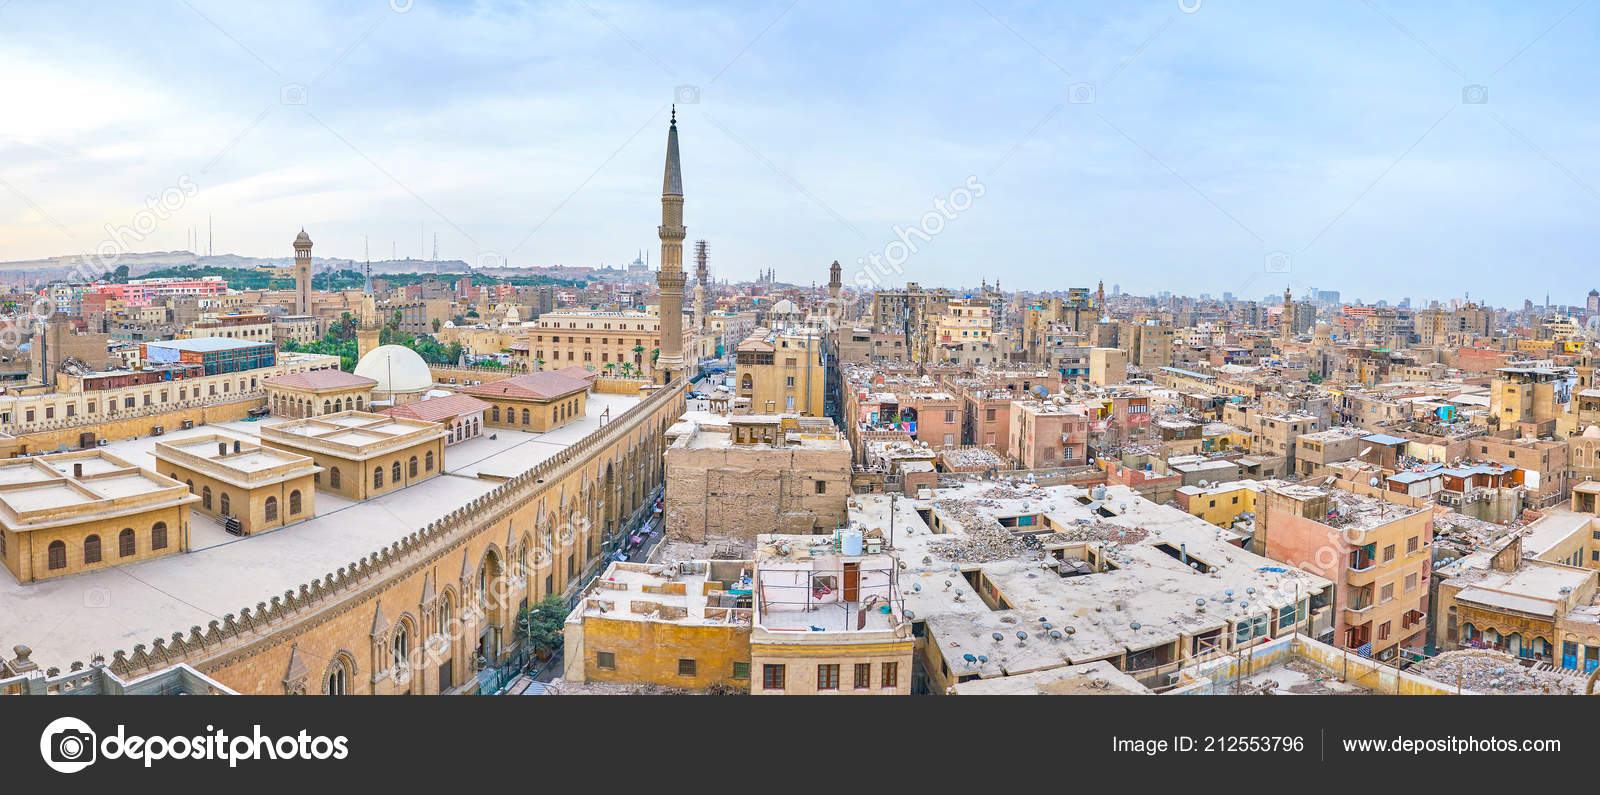 panorama islamic cairo ramshackle houses tall minarets huge hussein